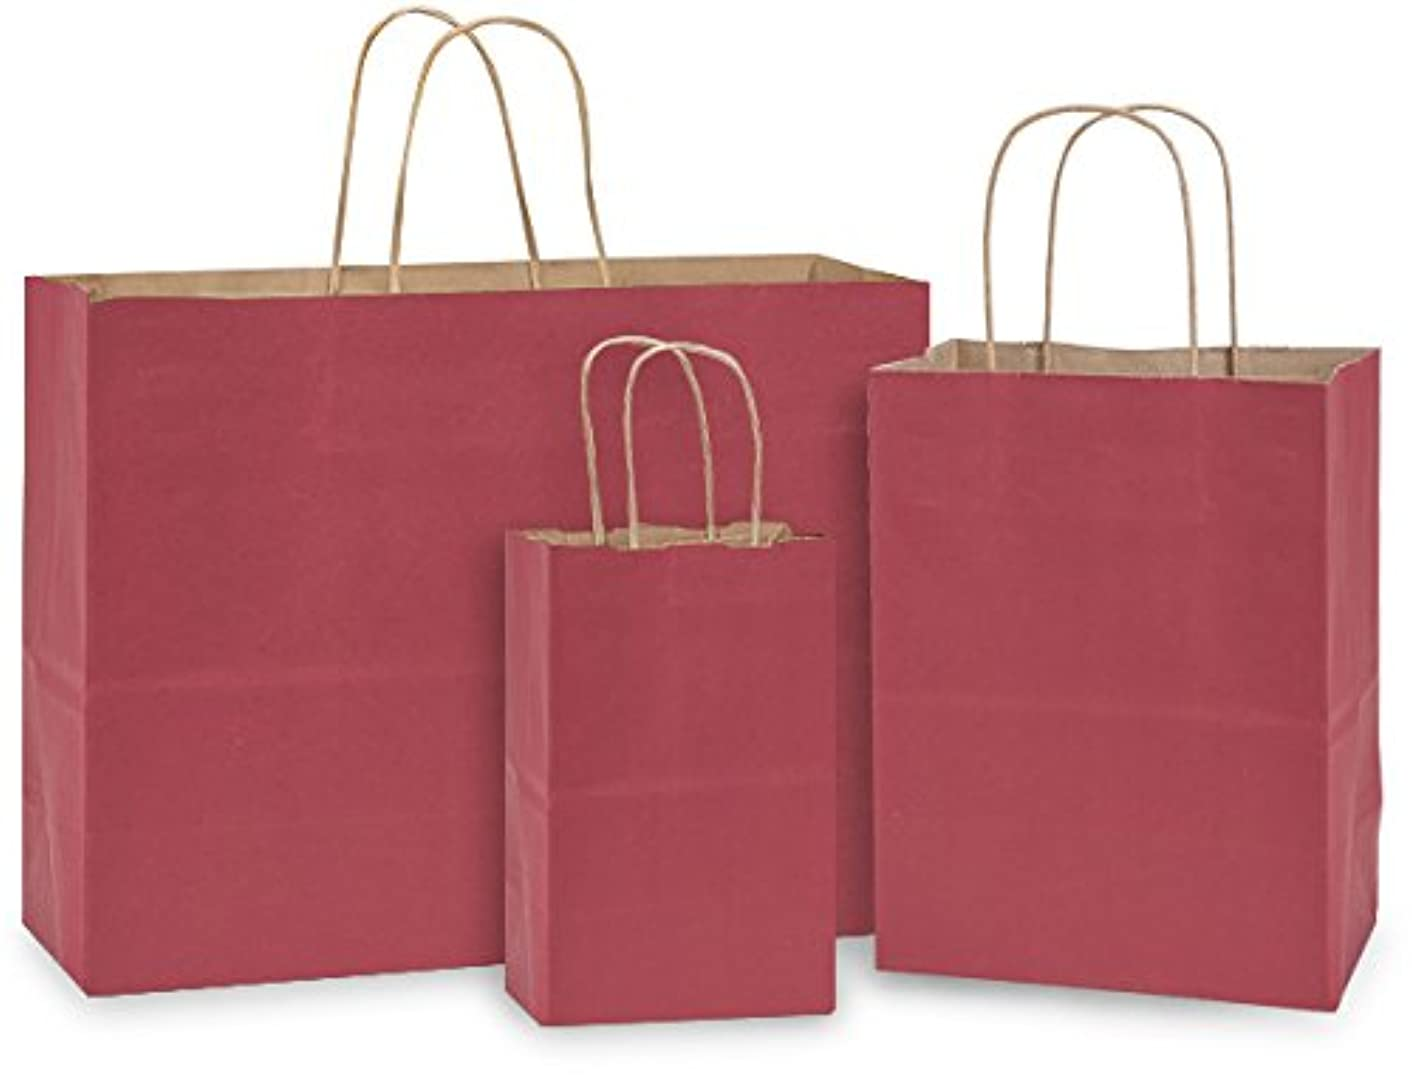 Pack Of 125, Christmas Red Natural Kraft Tint Bag W/Serrated Edge Tops & Sturdy Paper Twisted Handles Assortment 50 Rose, 50 Cub, 25 Vogue Made In USA